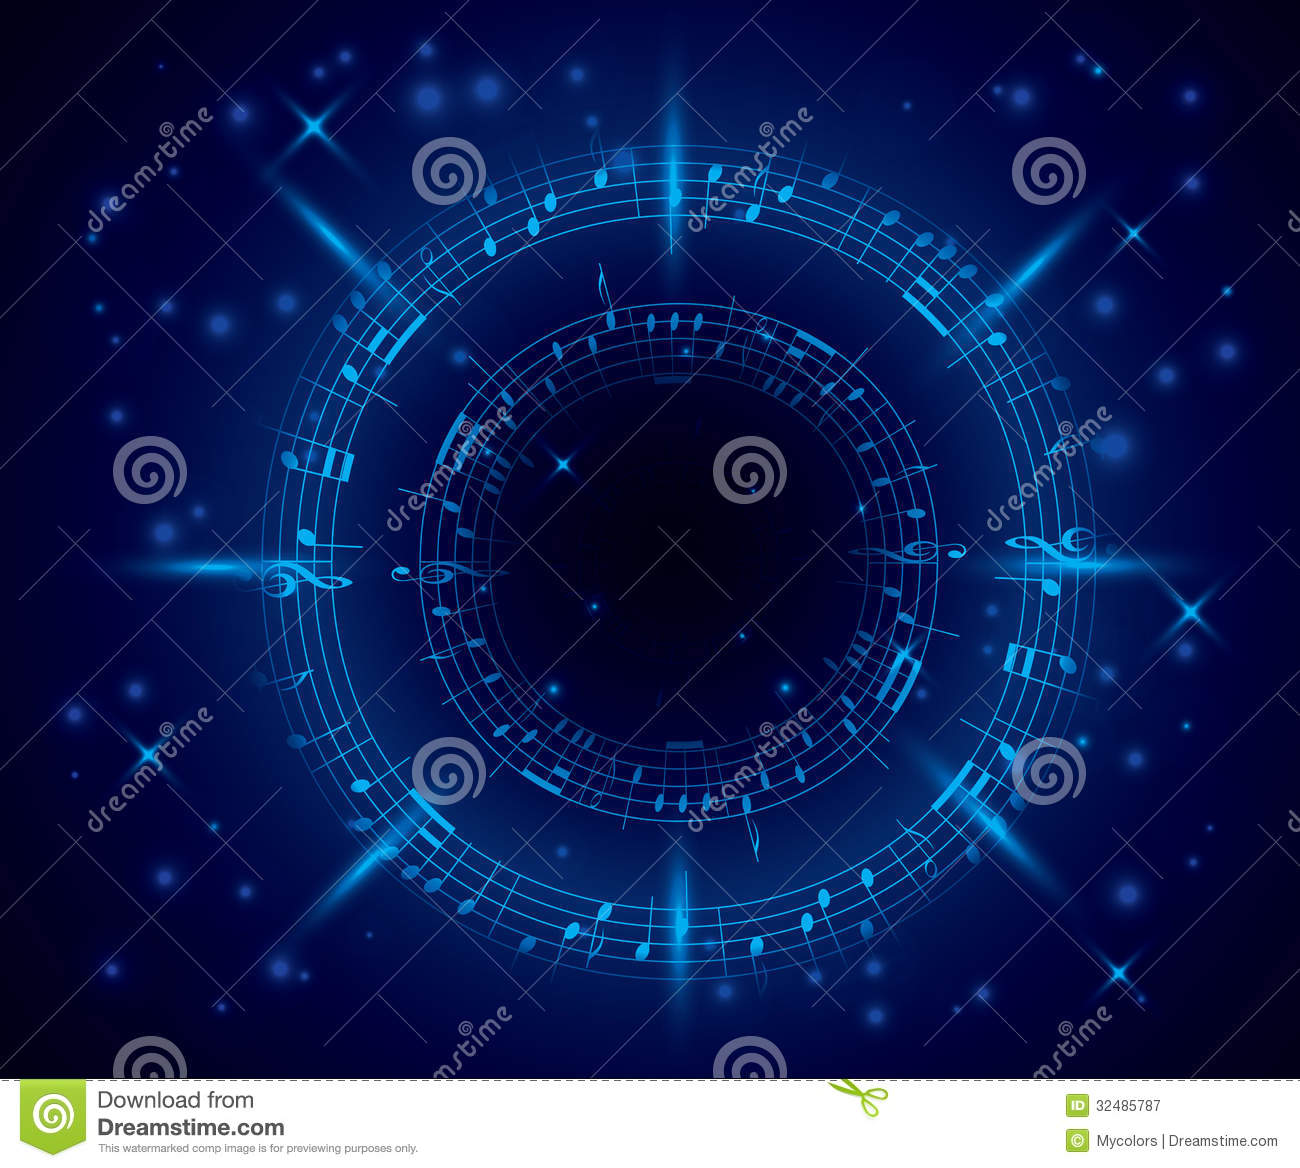 Simple Wallpaper Blue Music - abstract-dark-blue-music-background-notes-vector-eps-32485787  Collection_846048.jpg